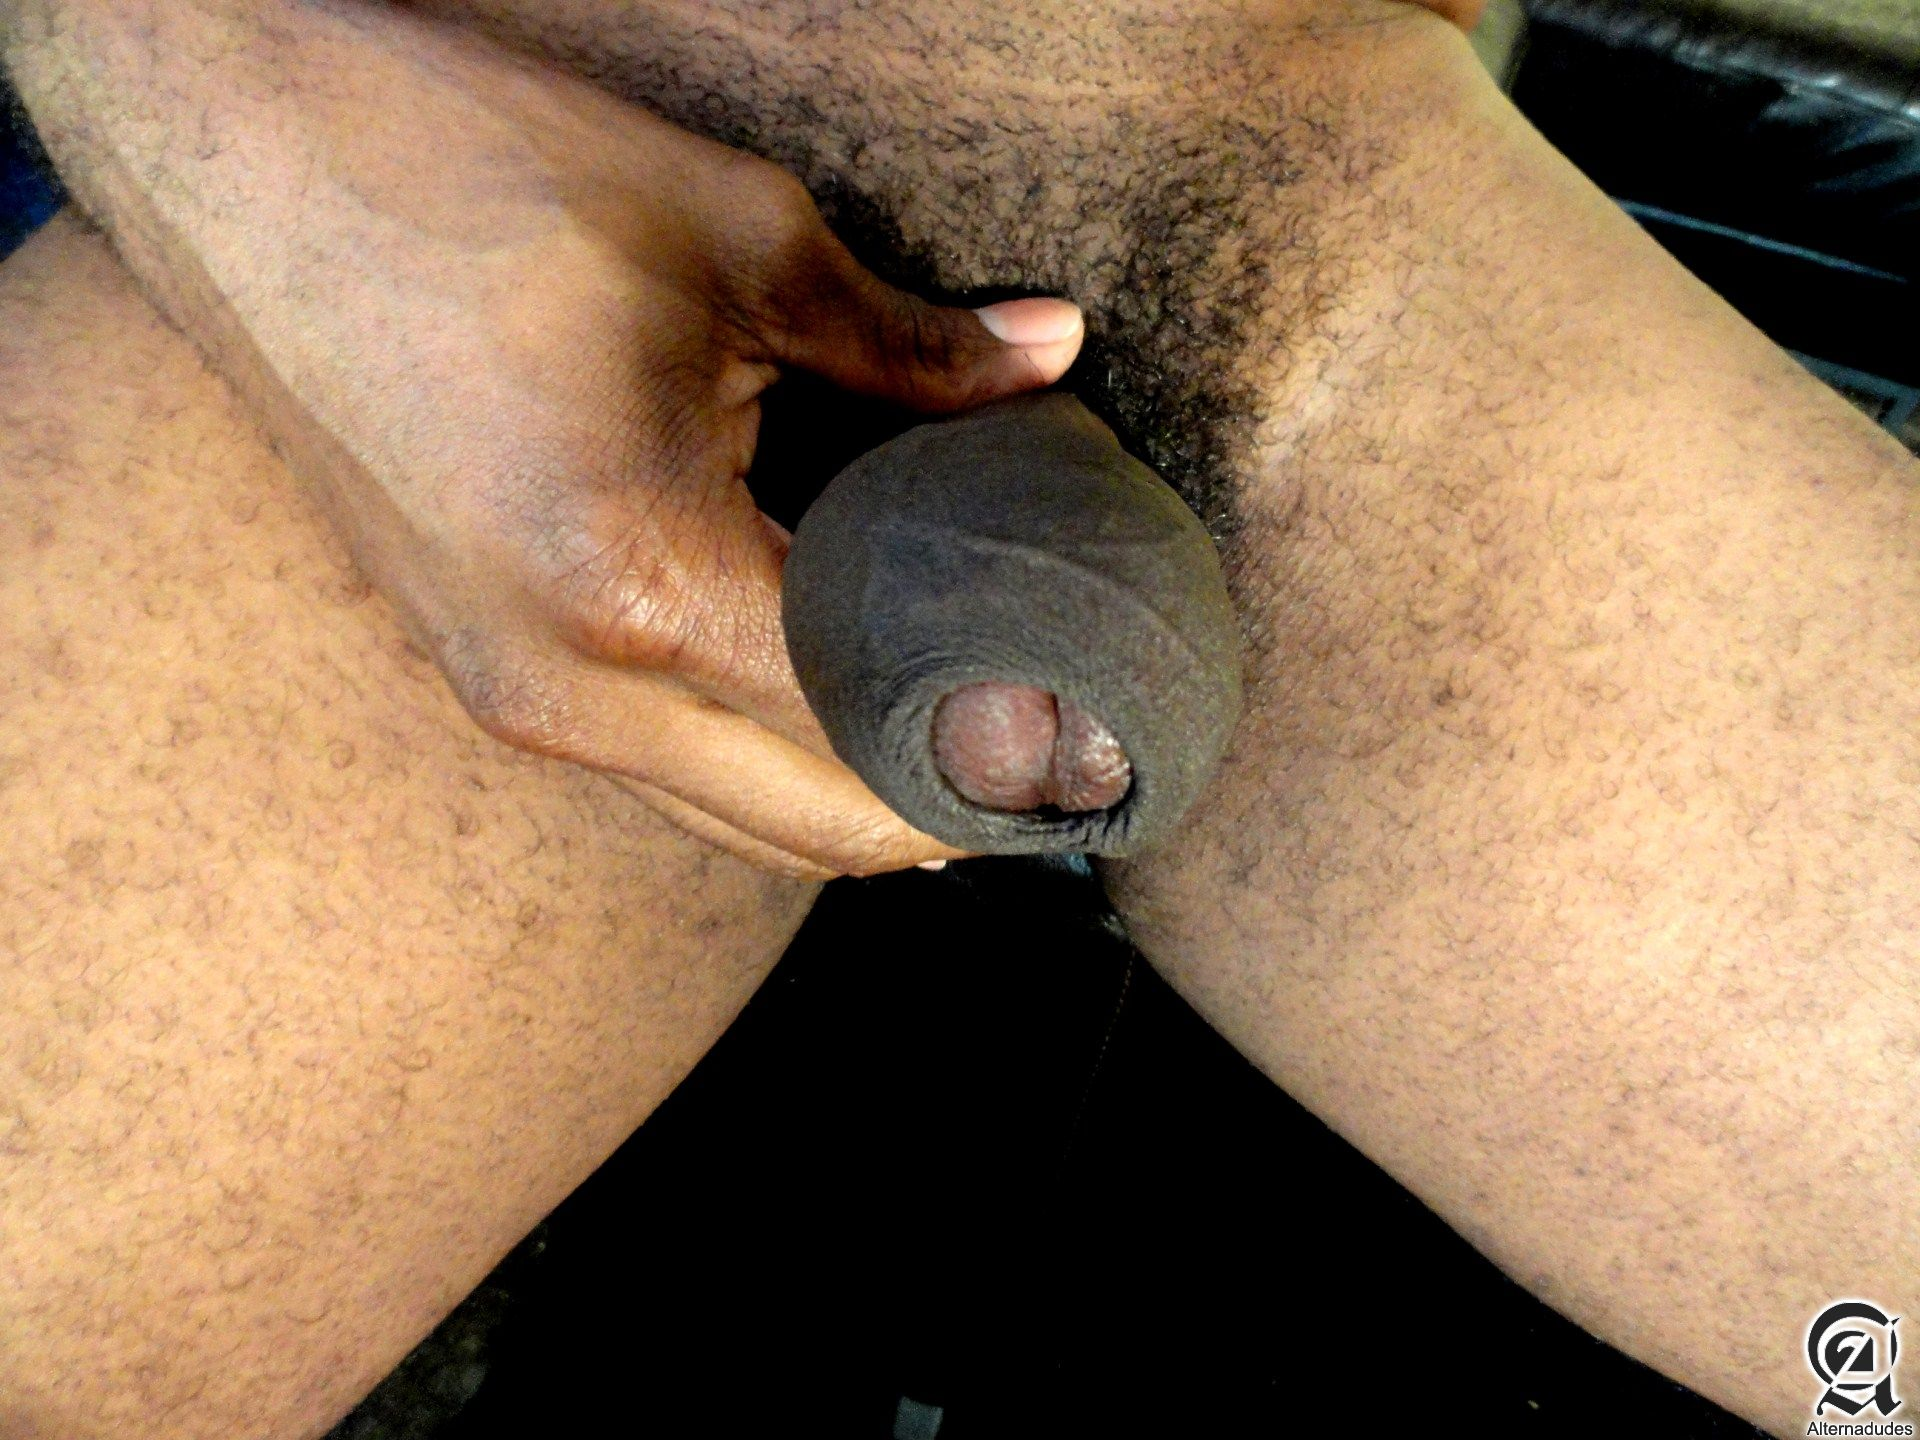 Black gays big dicks